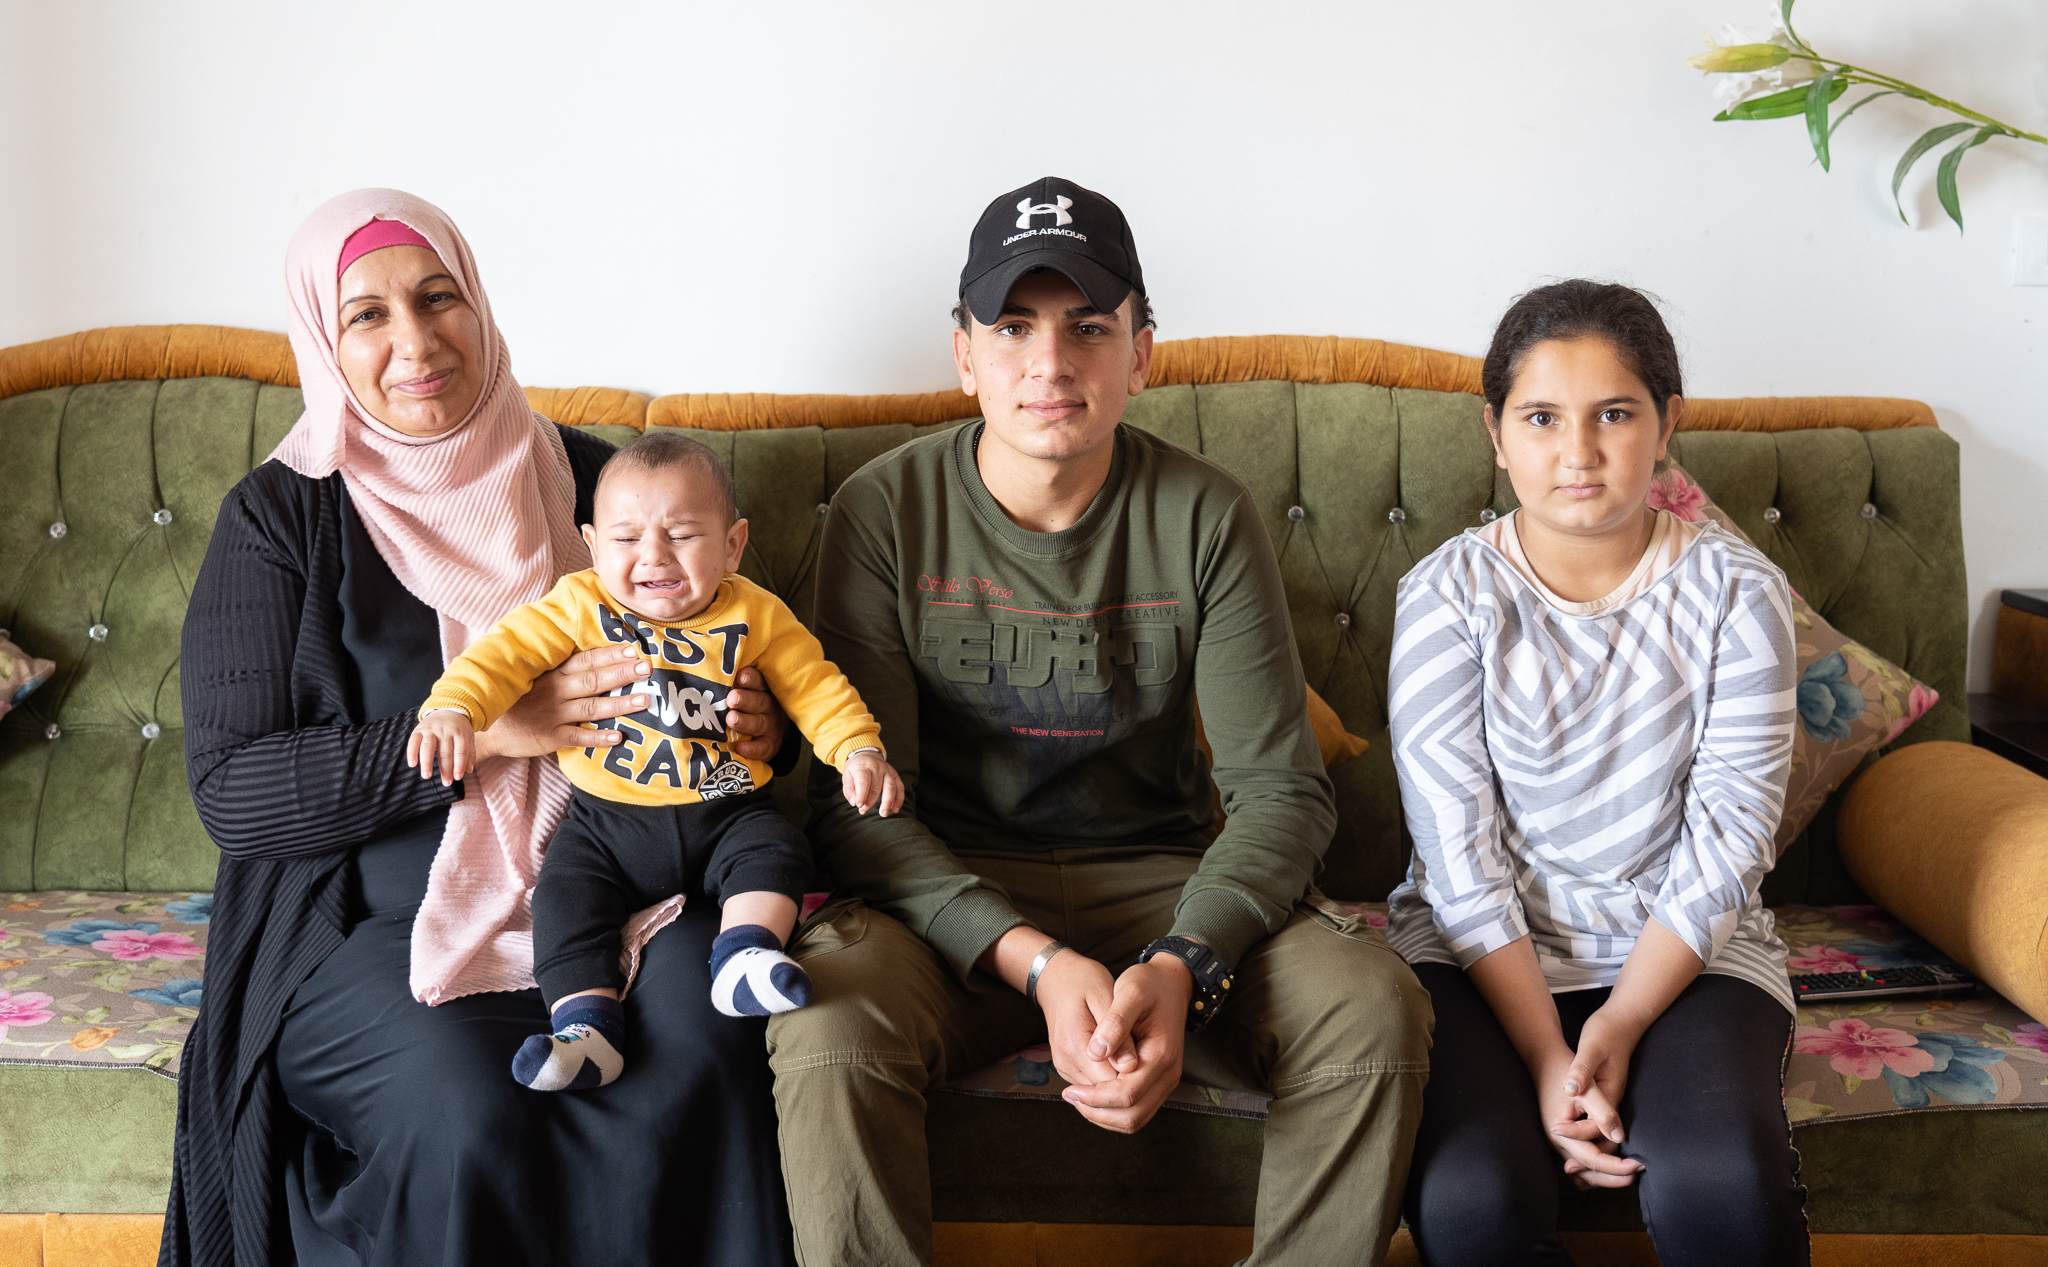 Ismail sits with his mother, baby brother, and younger sister at their home in Beit Fajjar after his release from detention. (Photo: DCIP)